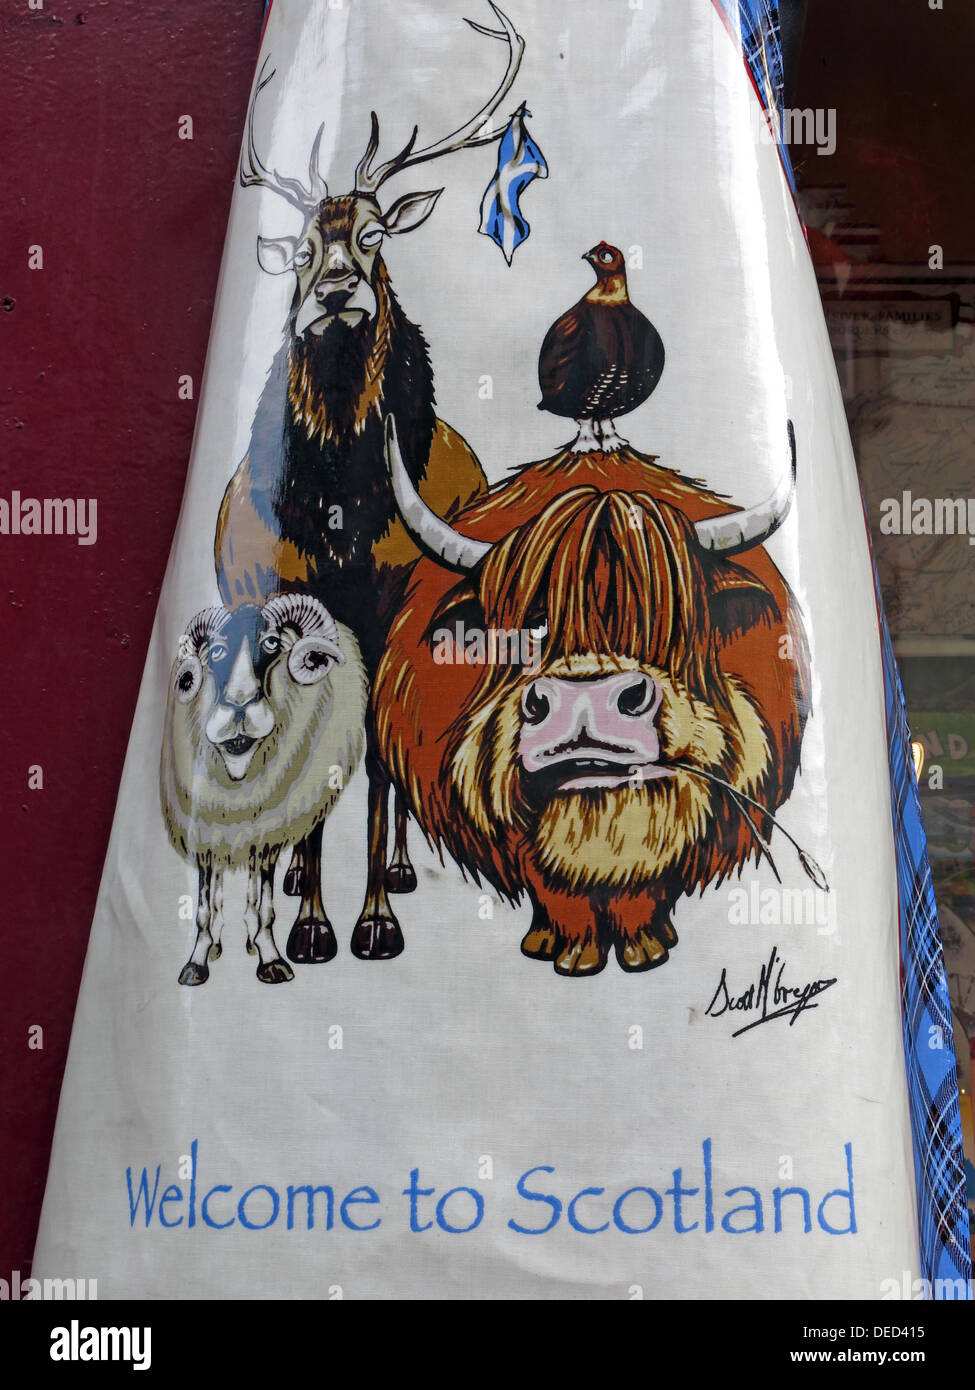 EH1,Scottish,Scot,scots,independance,independence,PVC,Kitchen,Apron,Souvenir,Gift,PVC,Kitchen,Apron,Souvenir,Gift,highland,cow,coo,animals,saltaire,flag,Gotonysmith,Buy Pictures of,Buy Images Of